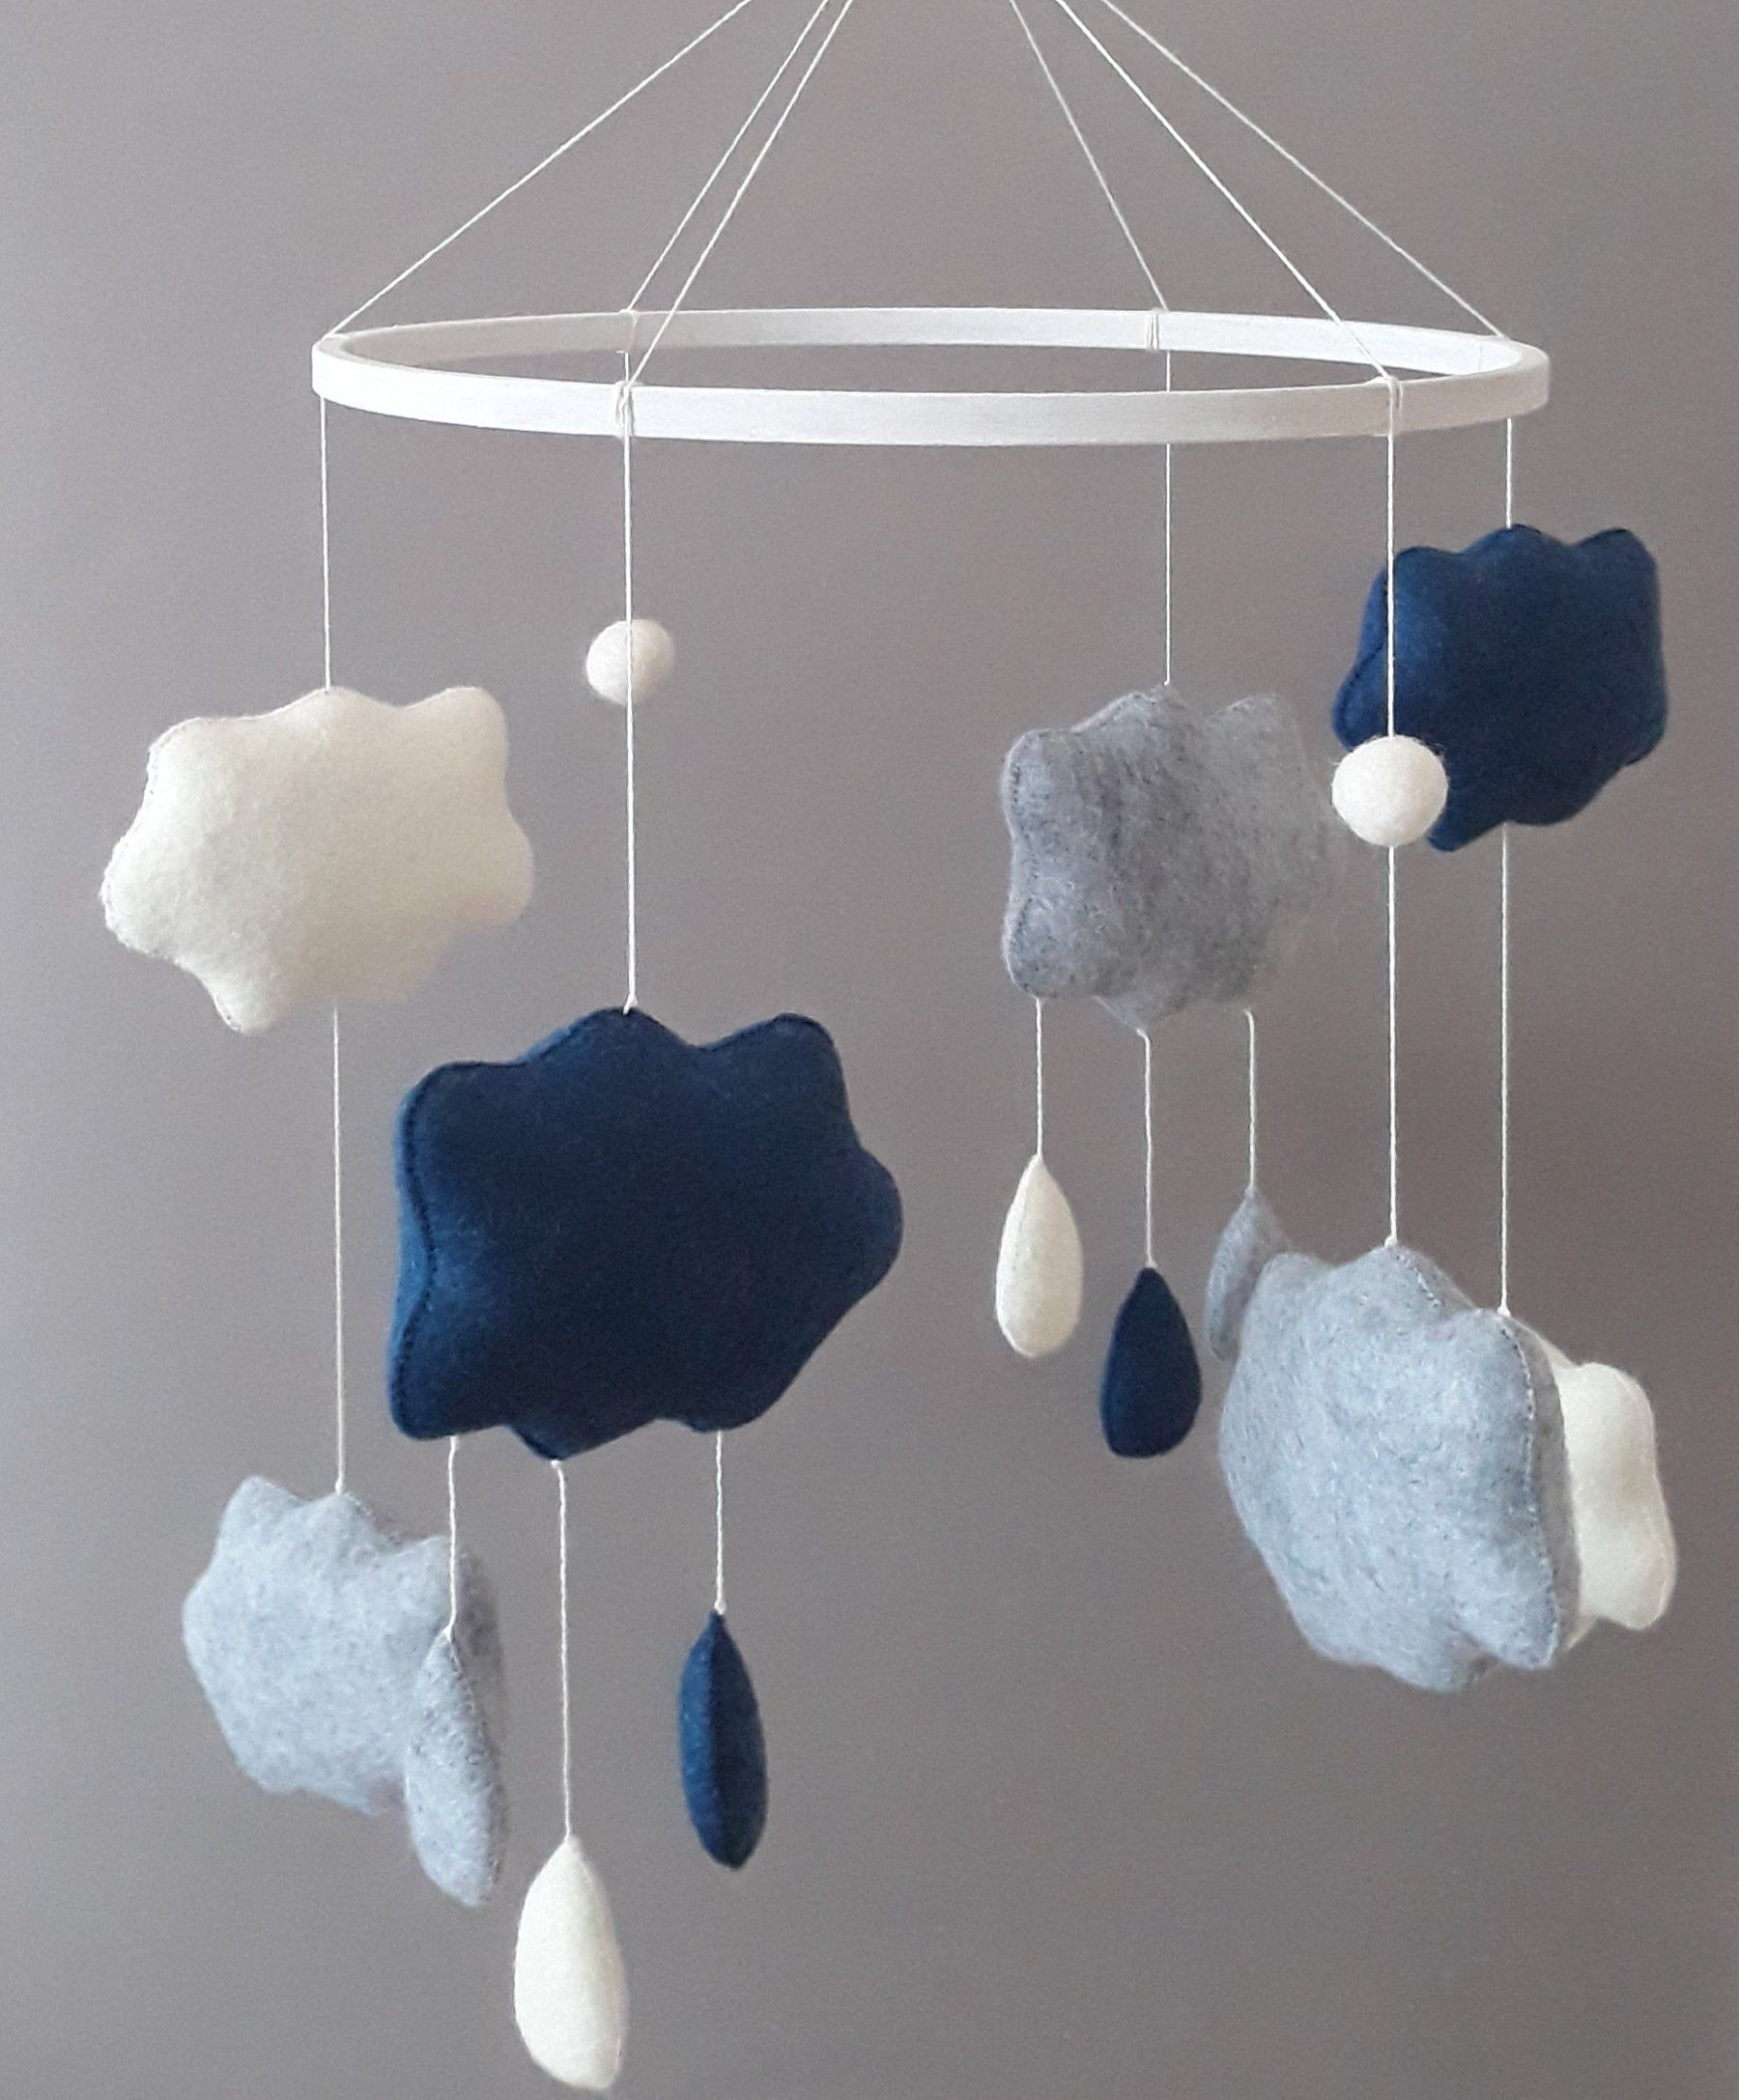 Modern Baby Mobile Natural Baby Mobile Cloud Mobile Baby Boy Mobile Baby Girl Mobile Crib Mobile Rain Mobile In 2020 Baby Boy Mobile Baby Mobile Girl Boy Mobile